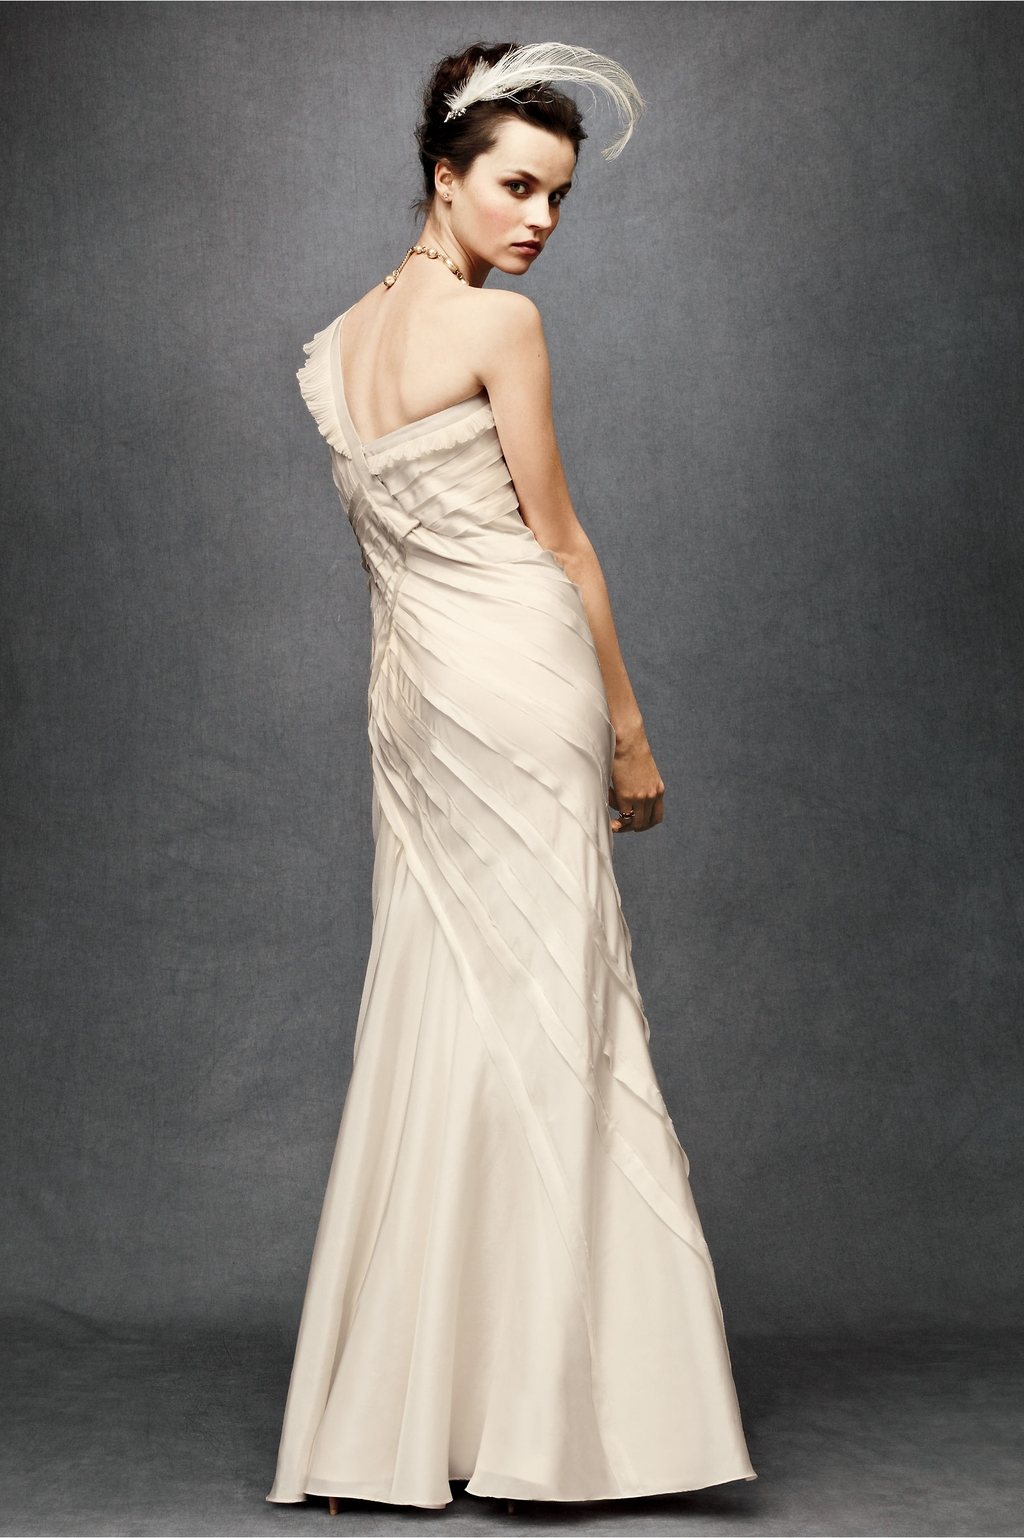 Ribboned-silk-wedding-dress-2011-bhldn-ivory-one-shoulder-back.full